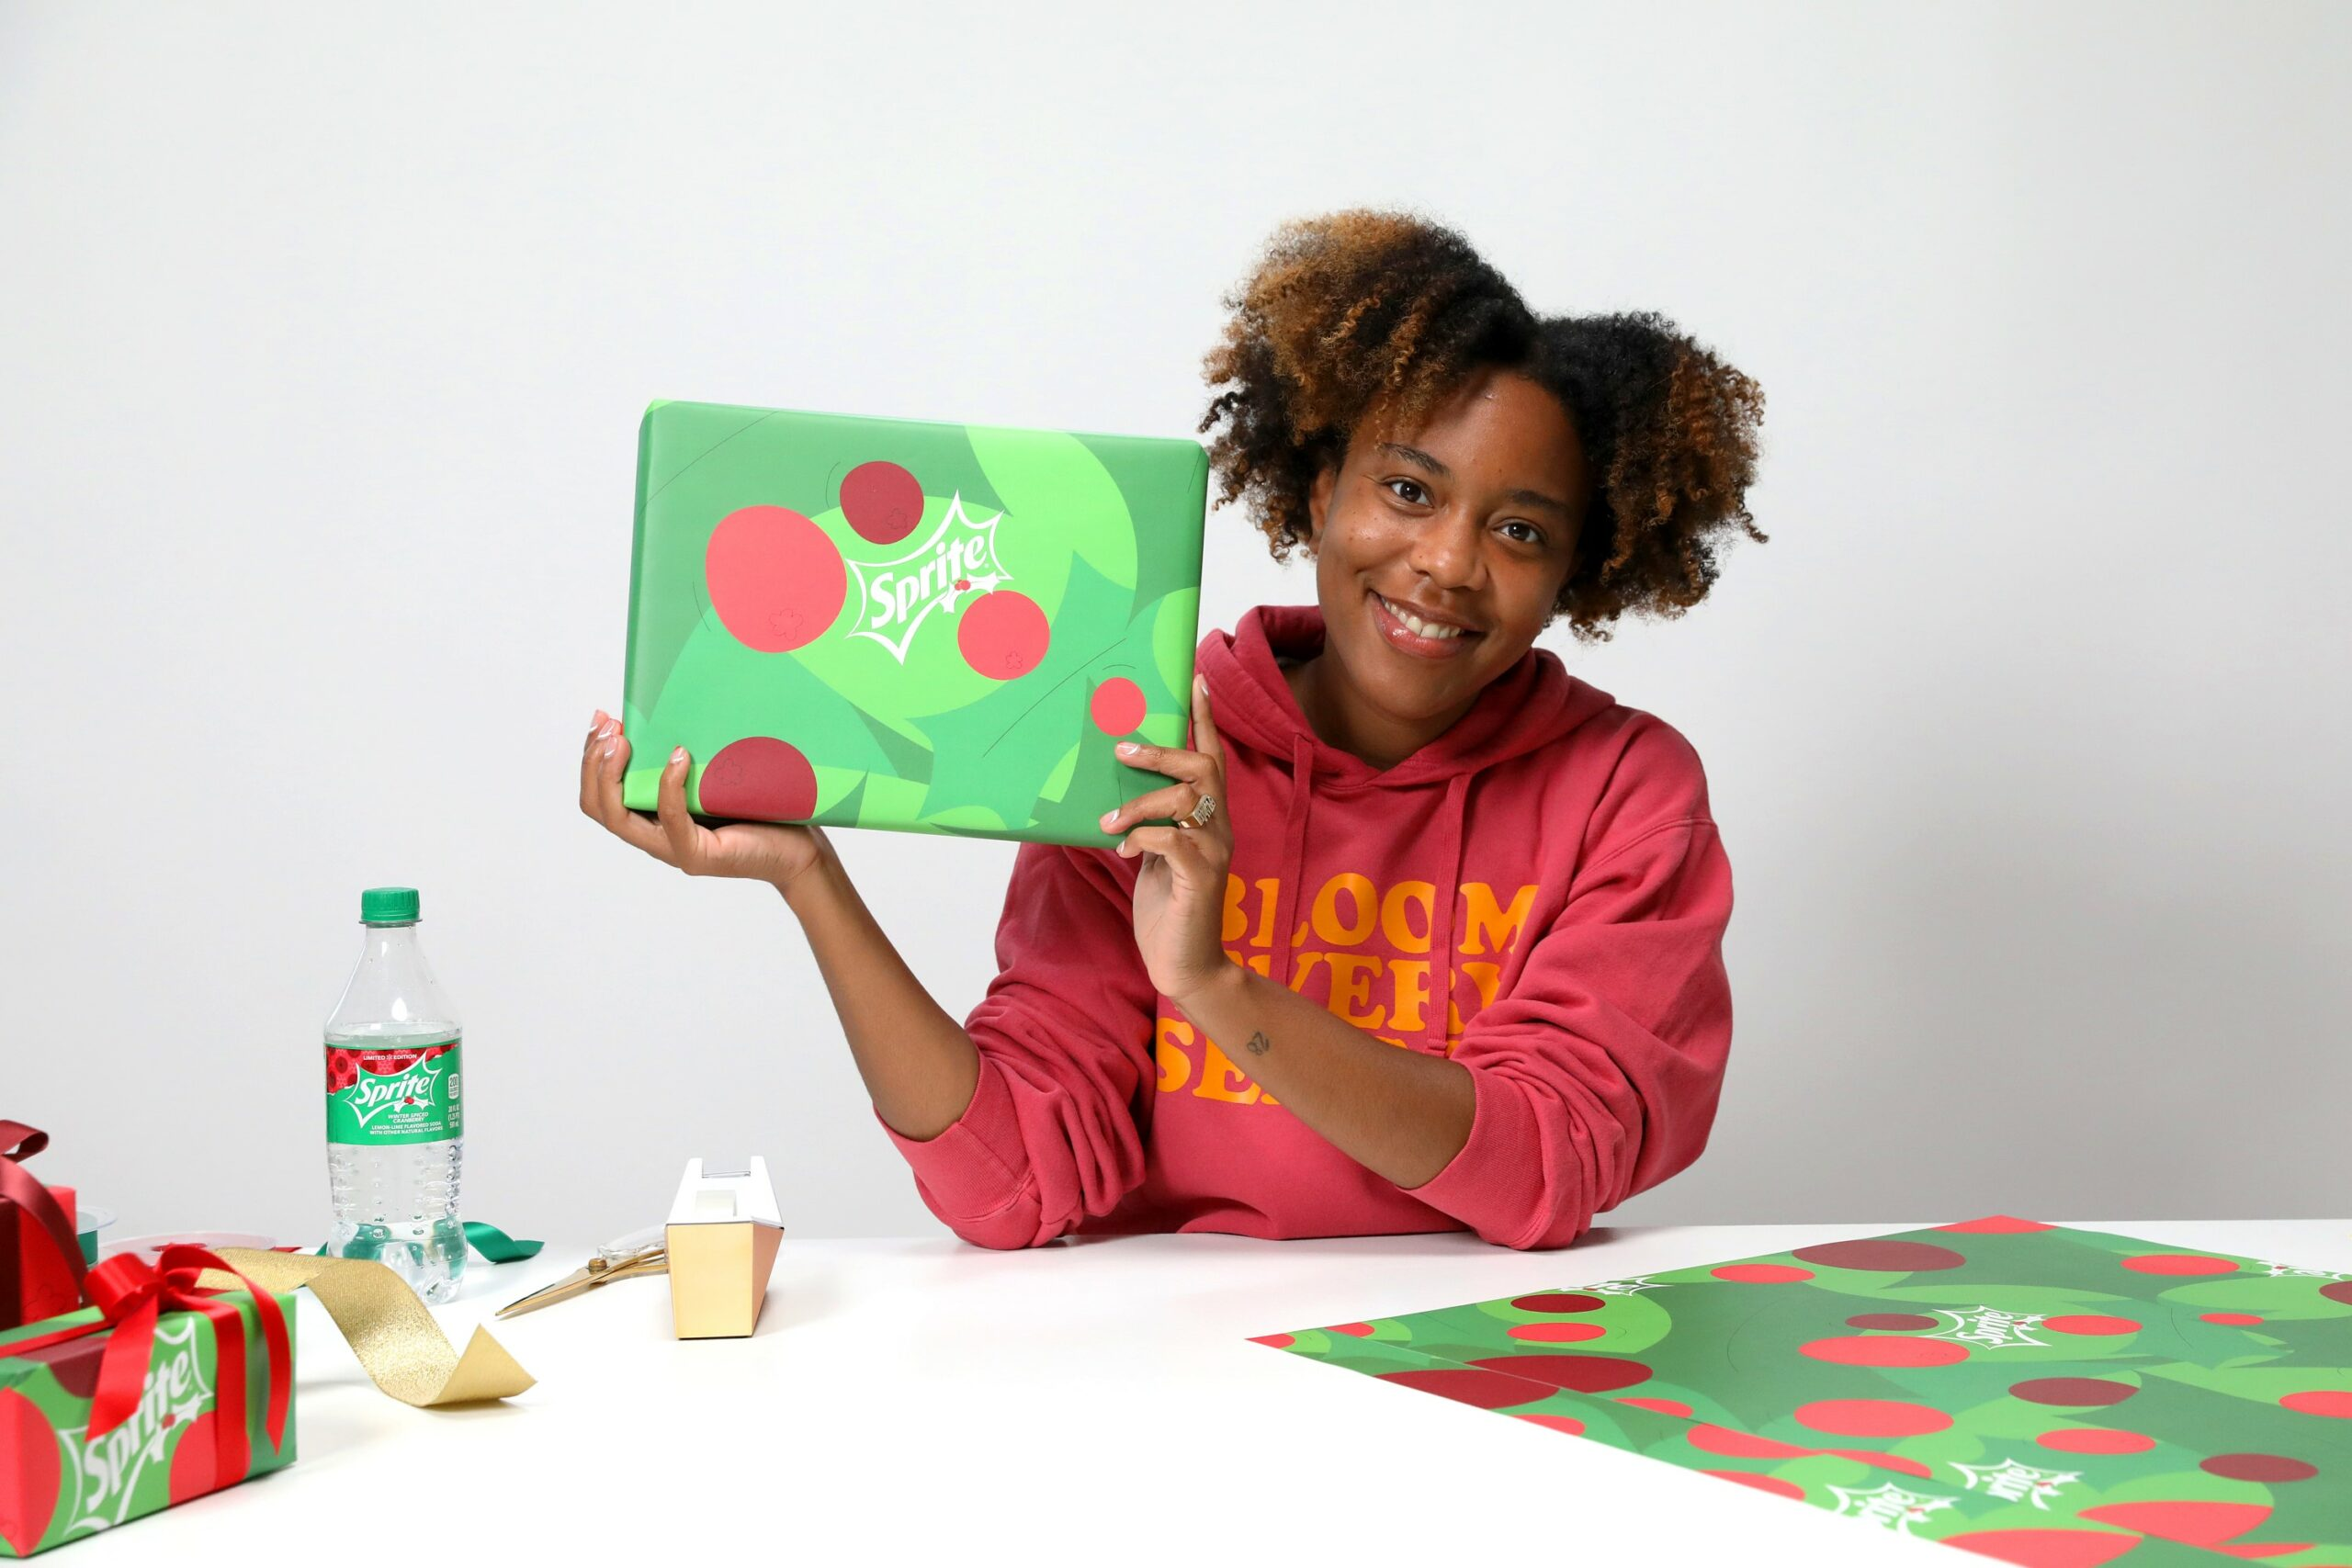 UNWRP founder Ashley Fouyolle with Sprite-themed giftwrap